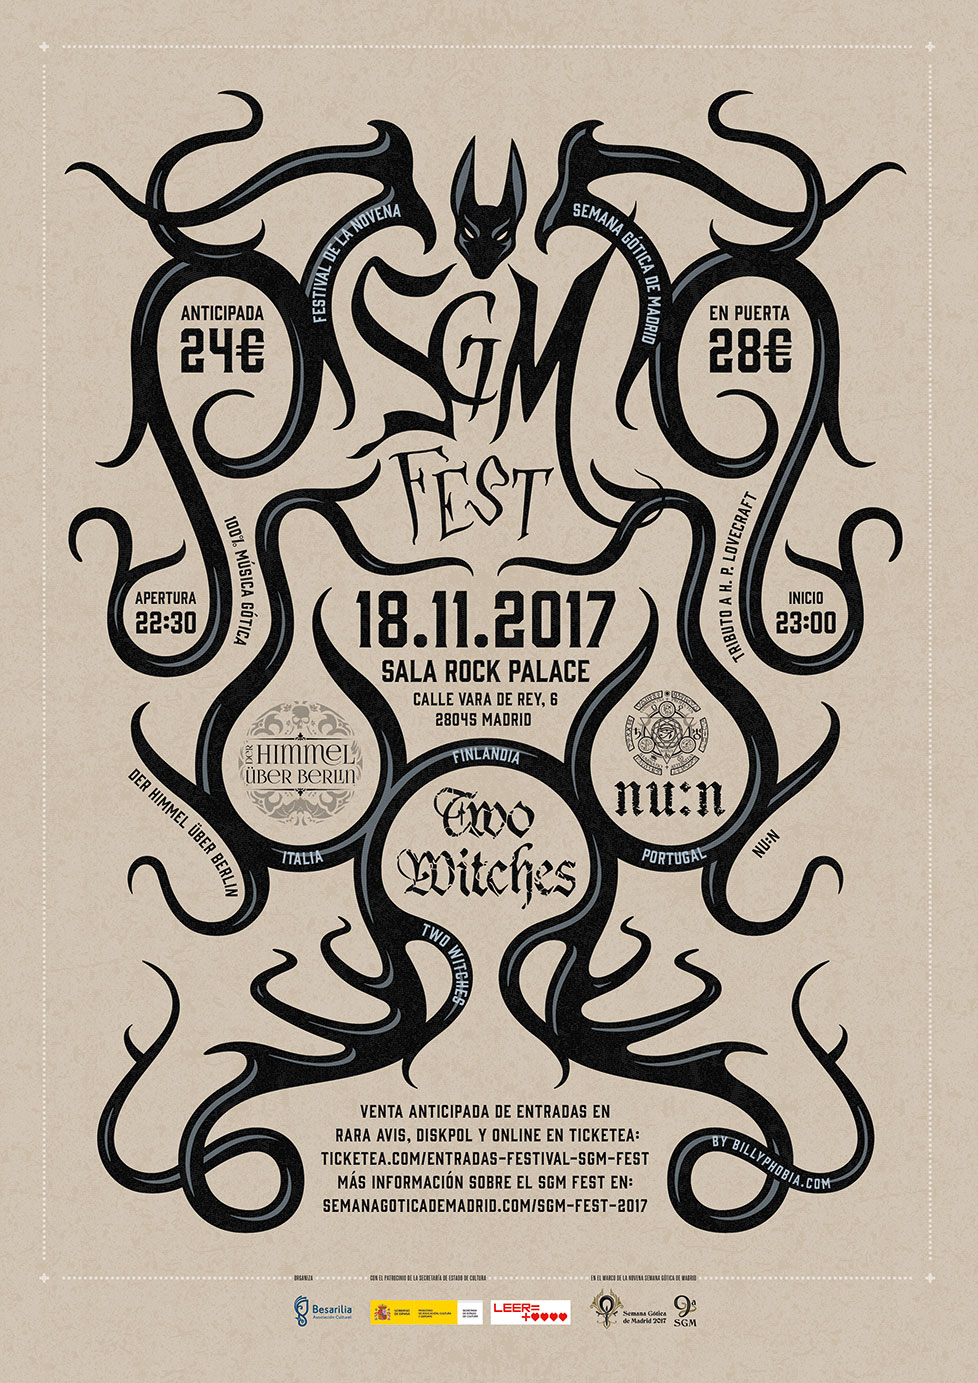 Semana Gótica de Madrid Festival (SGM FEST) 2017 Poster - Design & illustration by Billyphobia.com © 2017